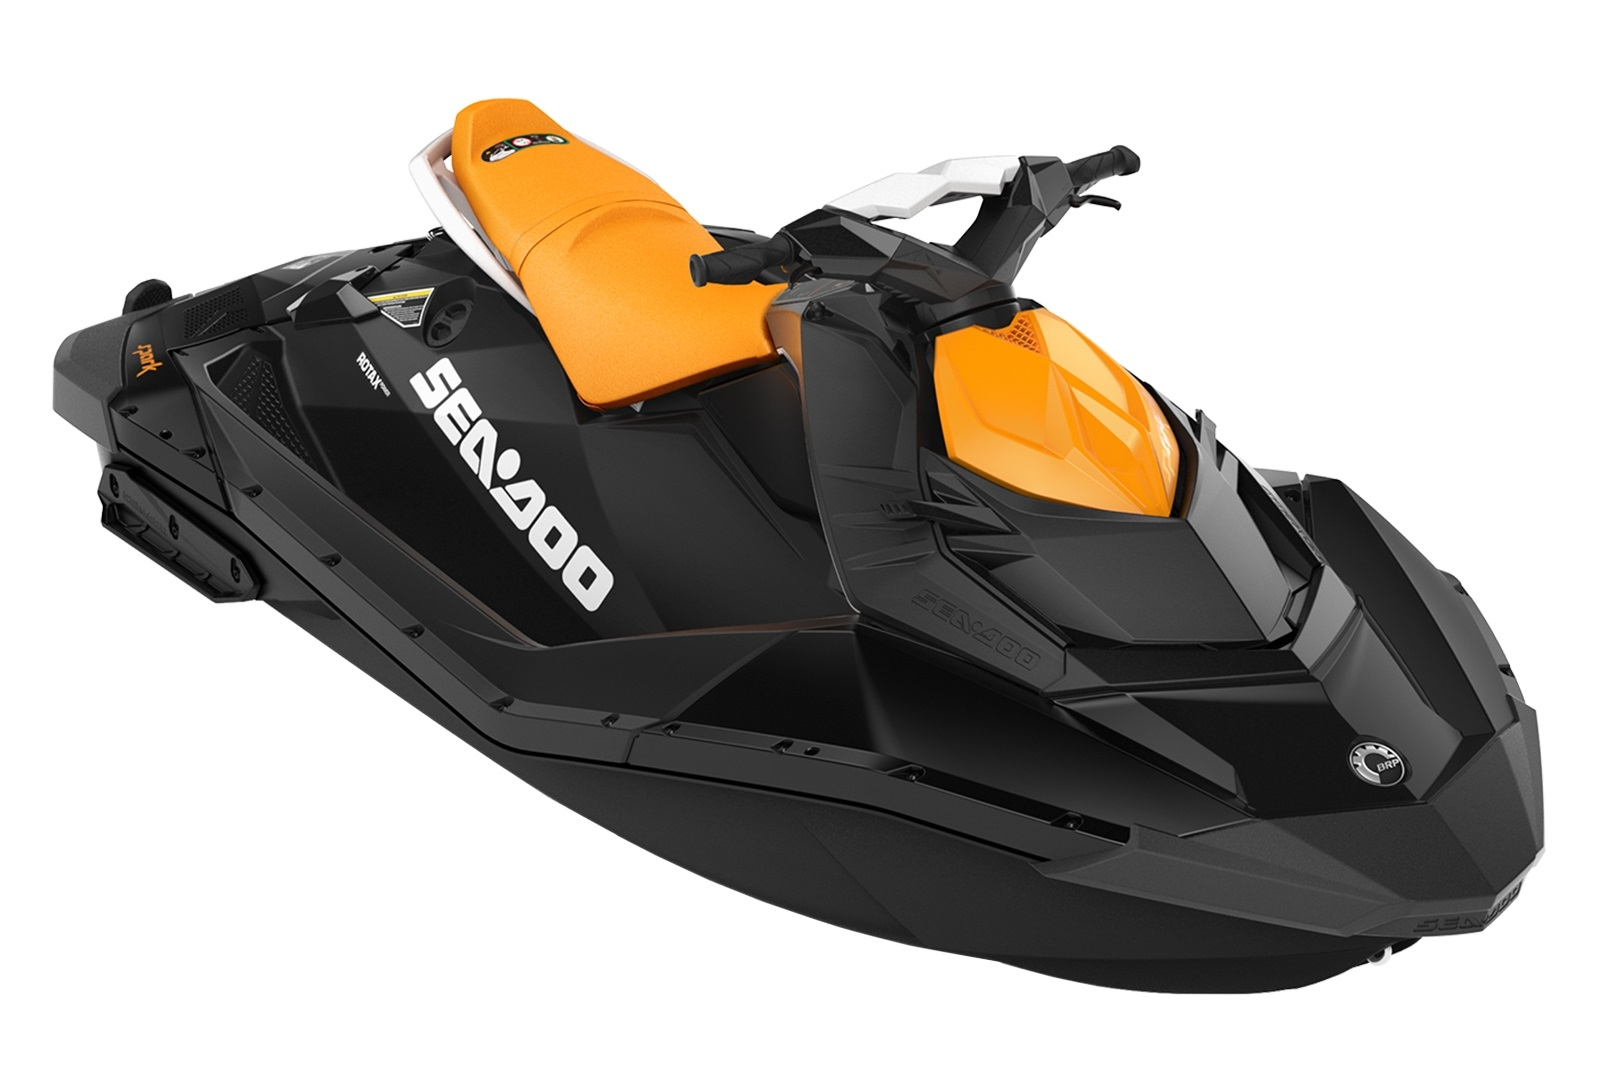 Sea Doo SPARK 900 ACE 2-up 60hp oranžovo-černý